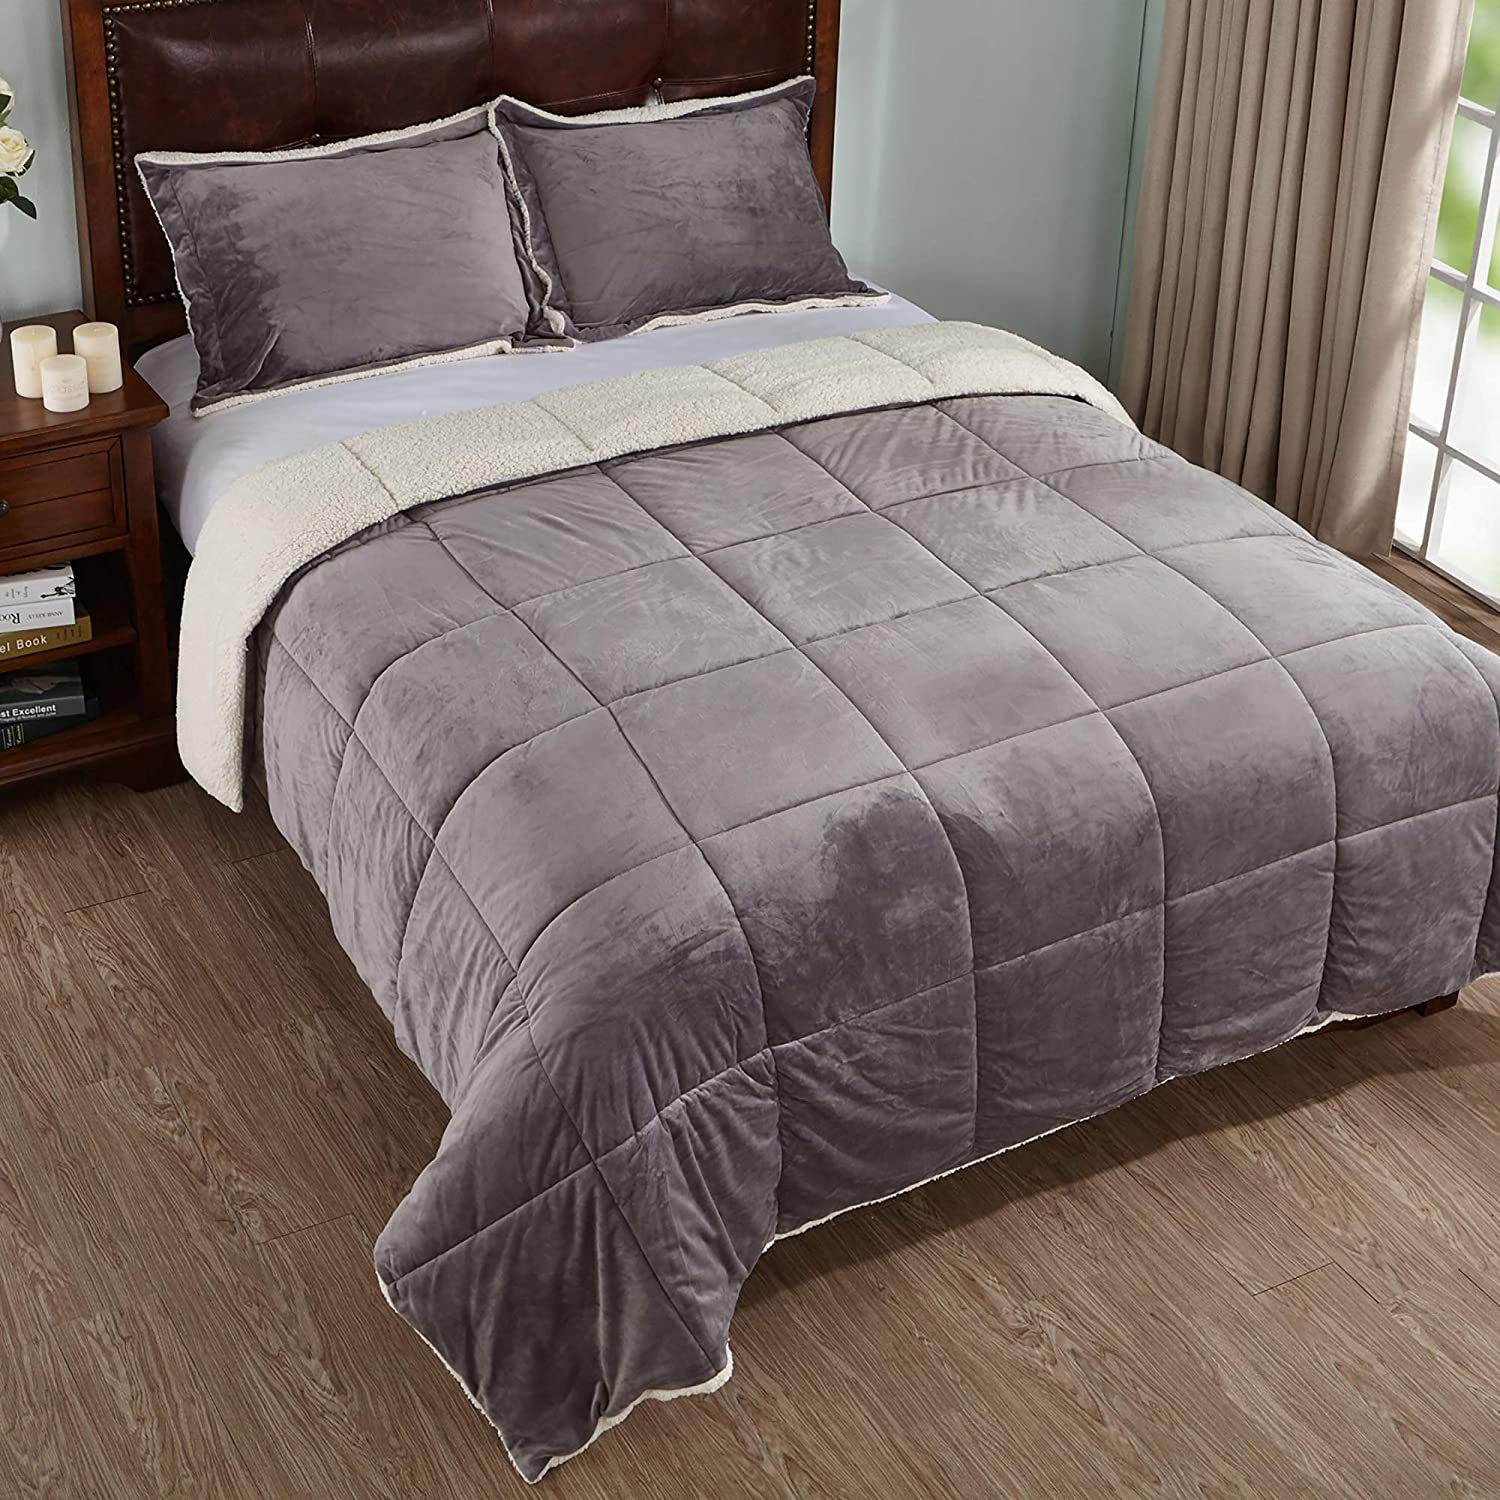 PEACE NEST 3-Piece Winter Sherpa Reversible Down Alternative Comforter Set with Pillow Shams, Queen Size, Grey